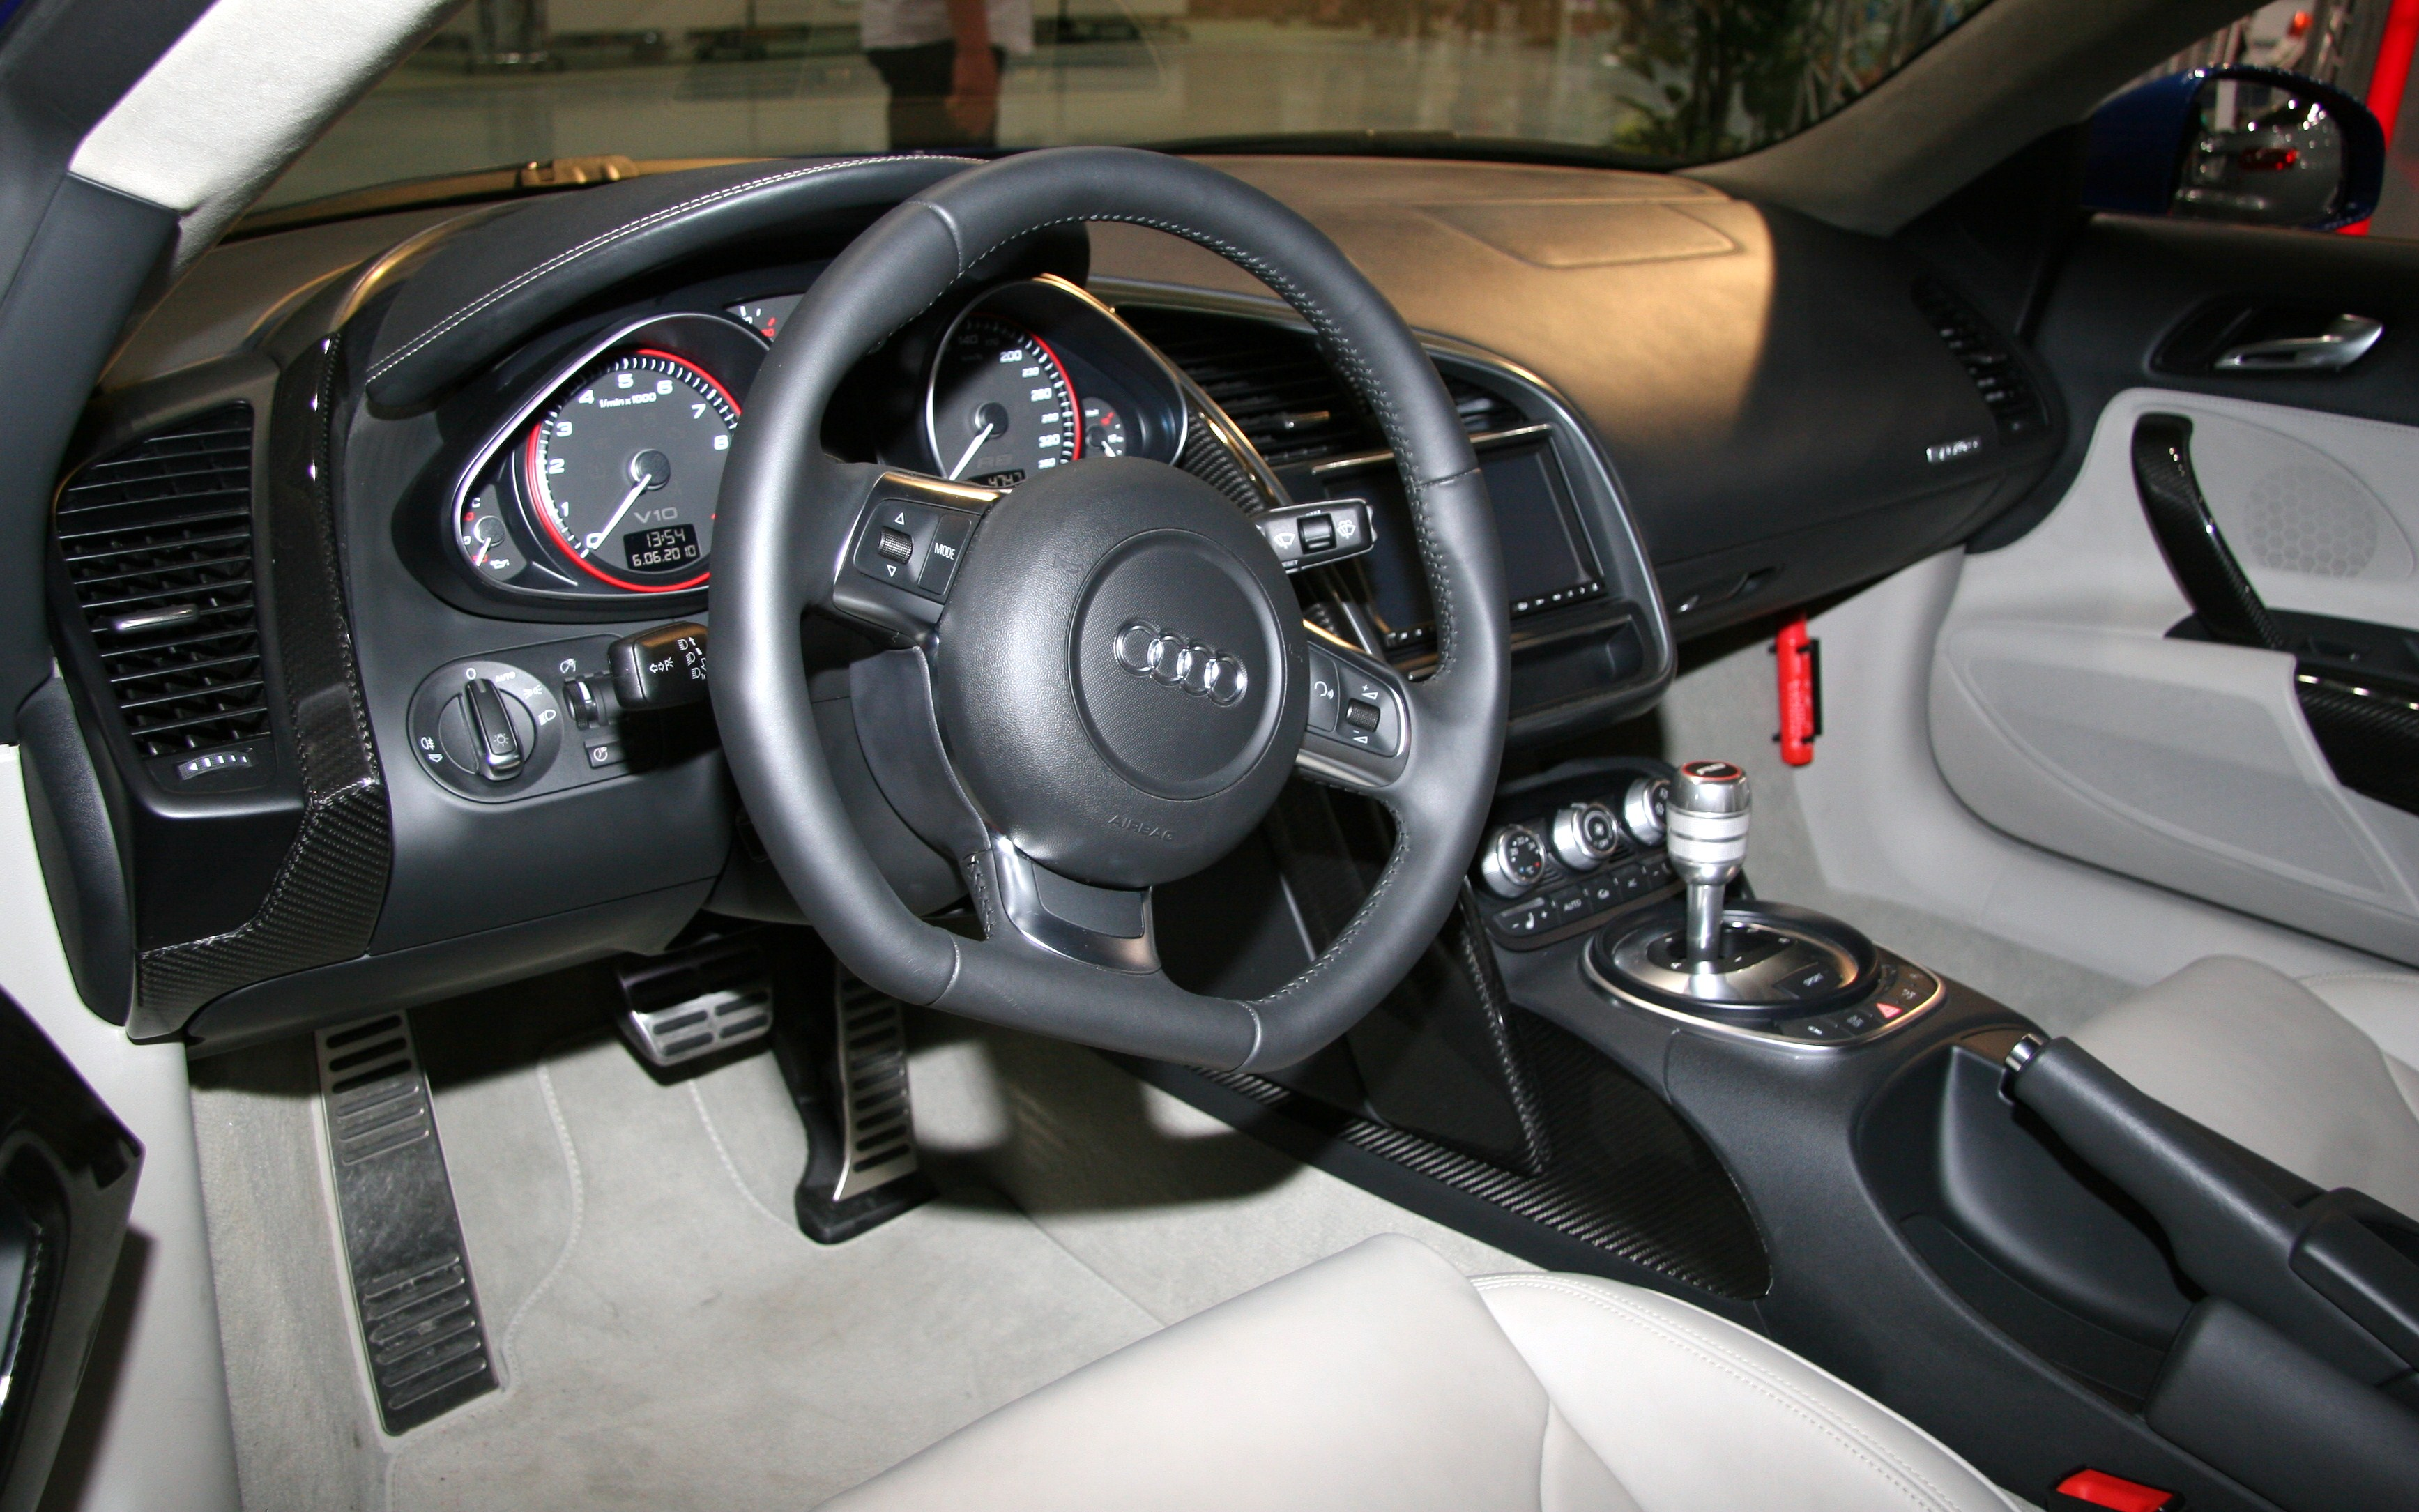 https://upload.wikimedia.org/wikipedia/commons/e/ed/Audi_R8_V10_interior.jpg